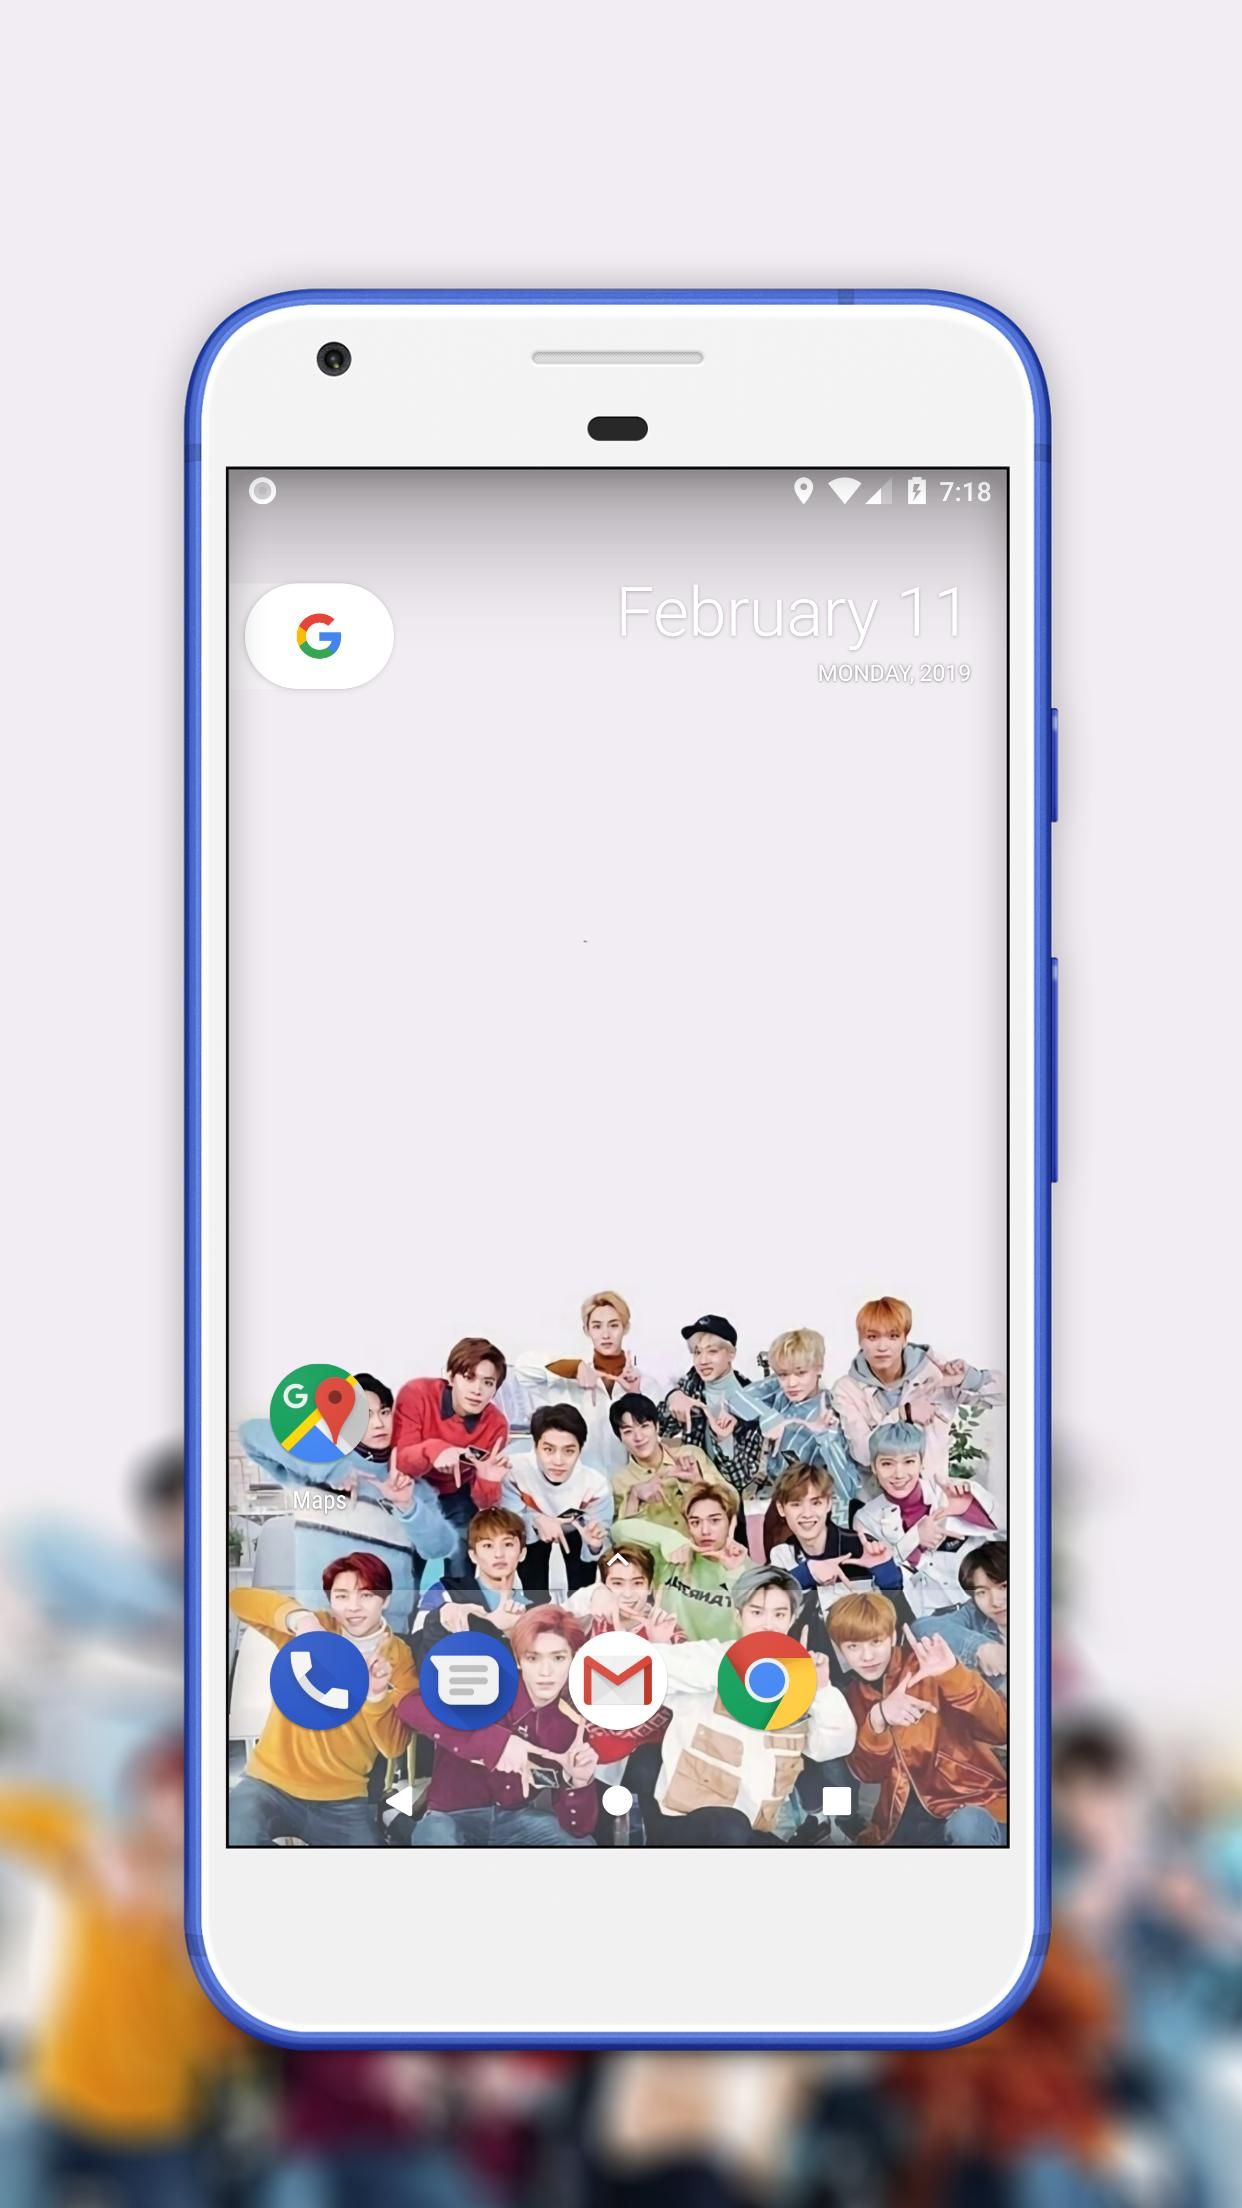 Nct Wallpaper Kpop For Android Apk Download